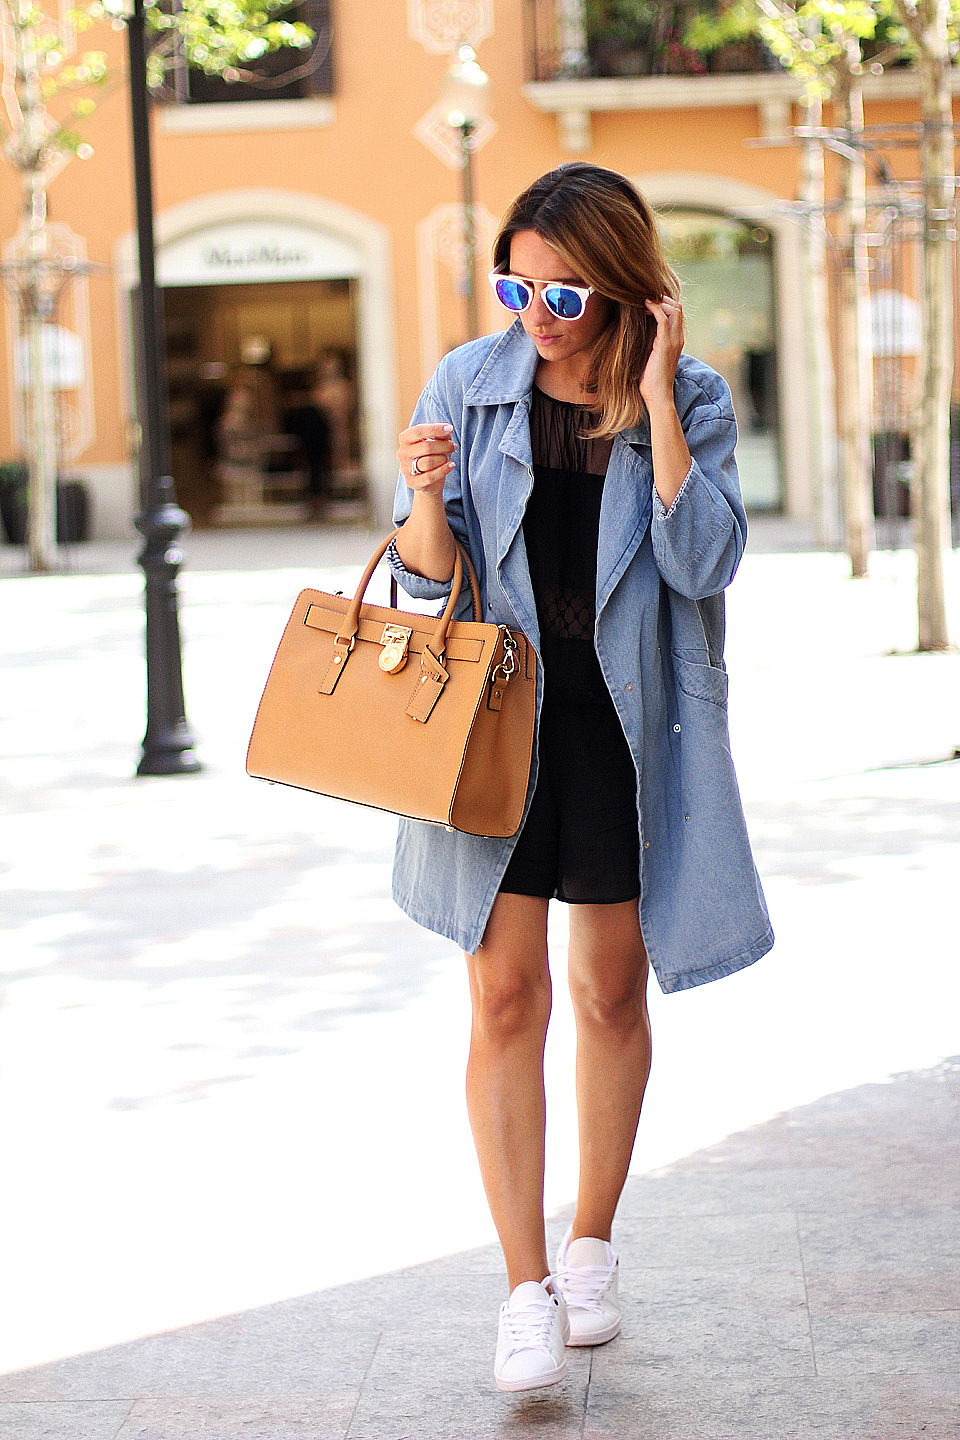 sneakers-outfit-blogger (4)2